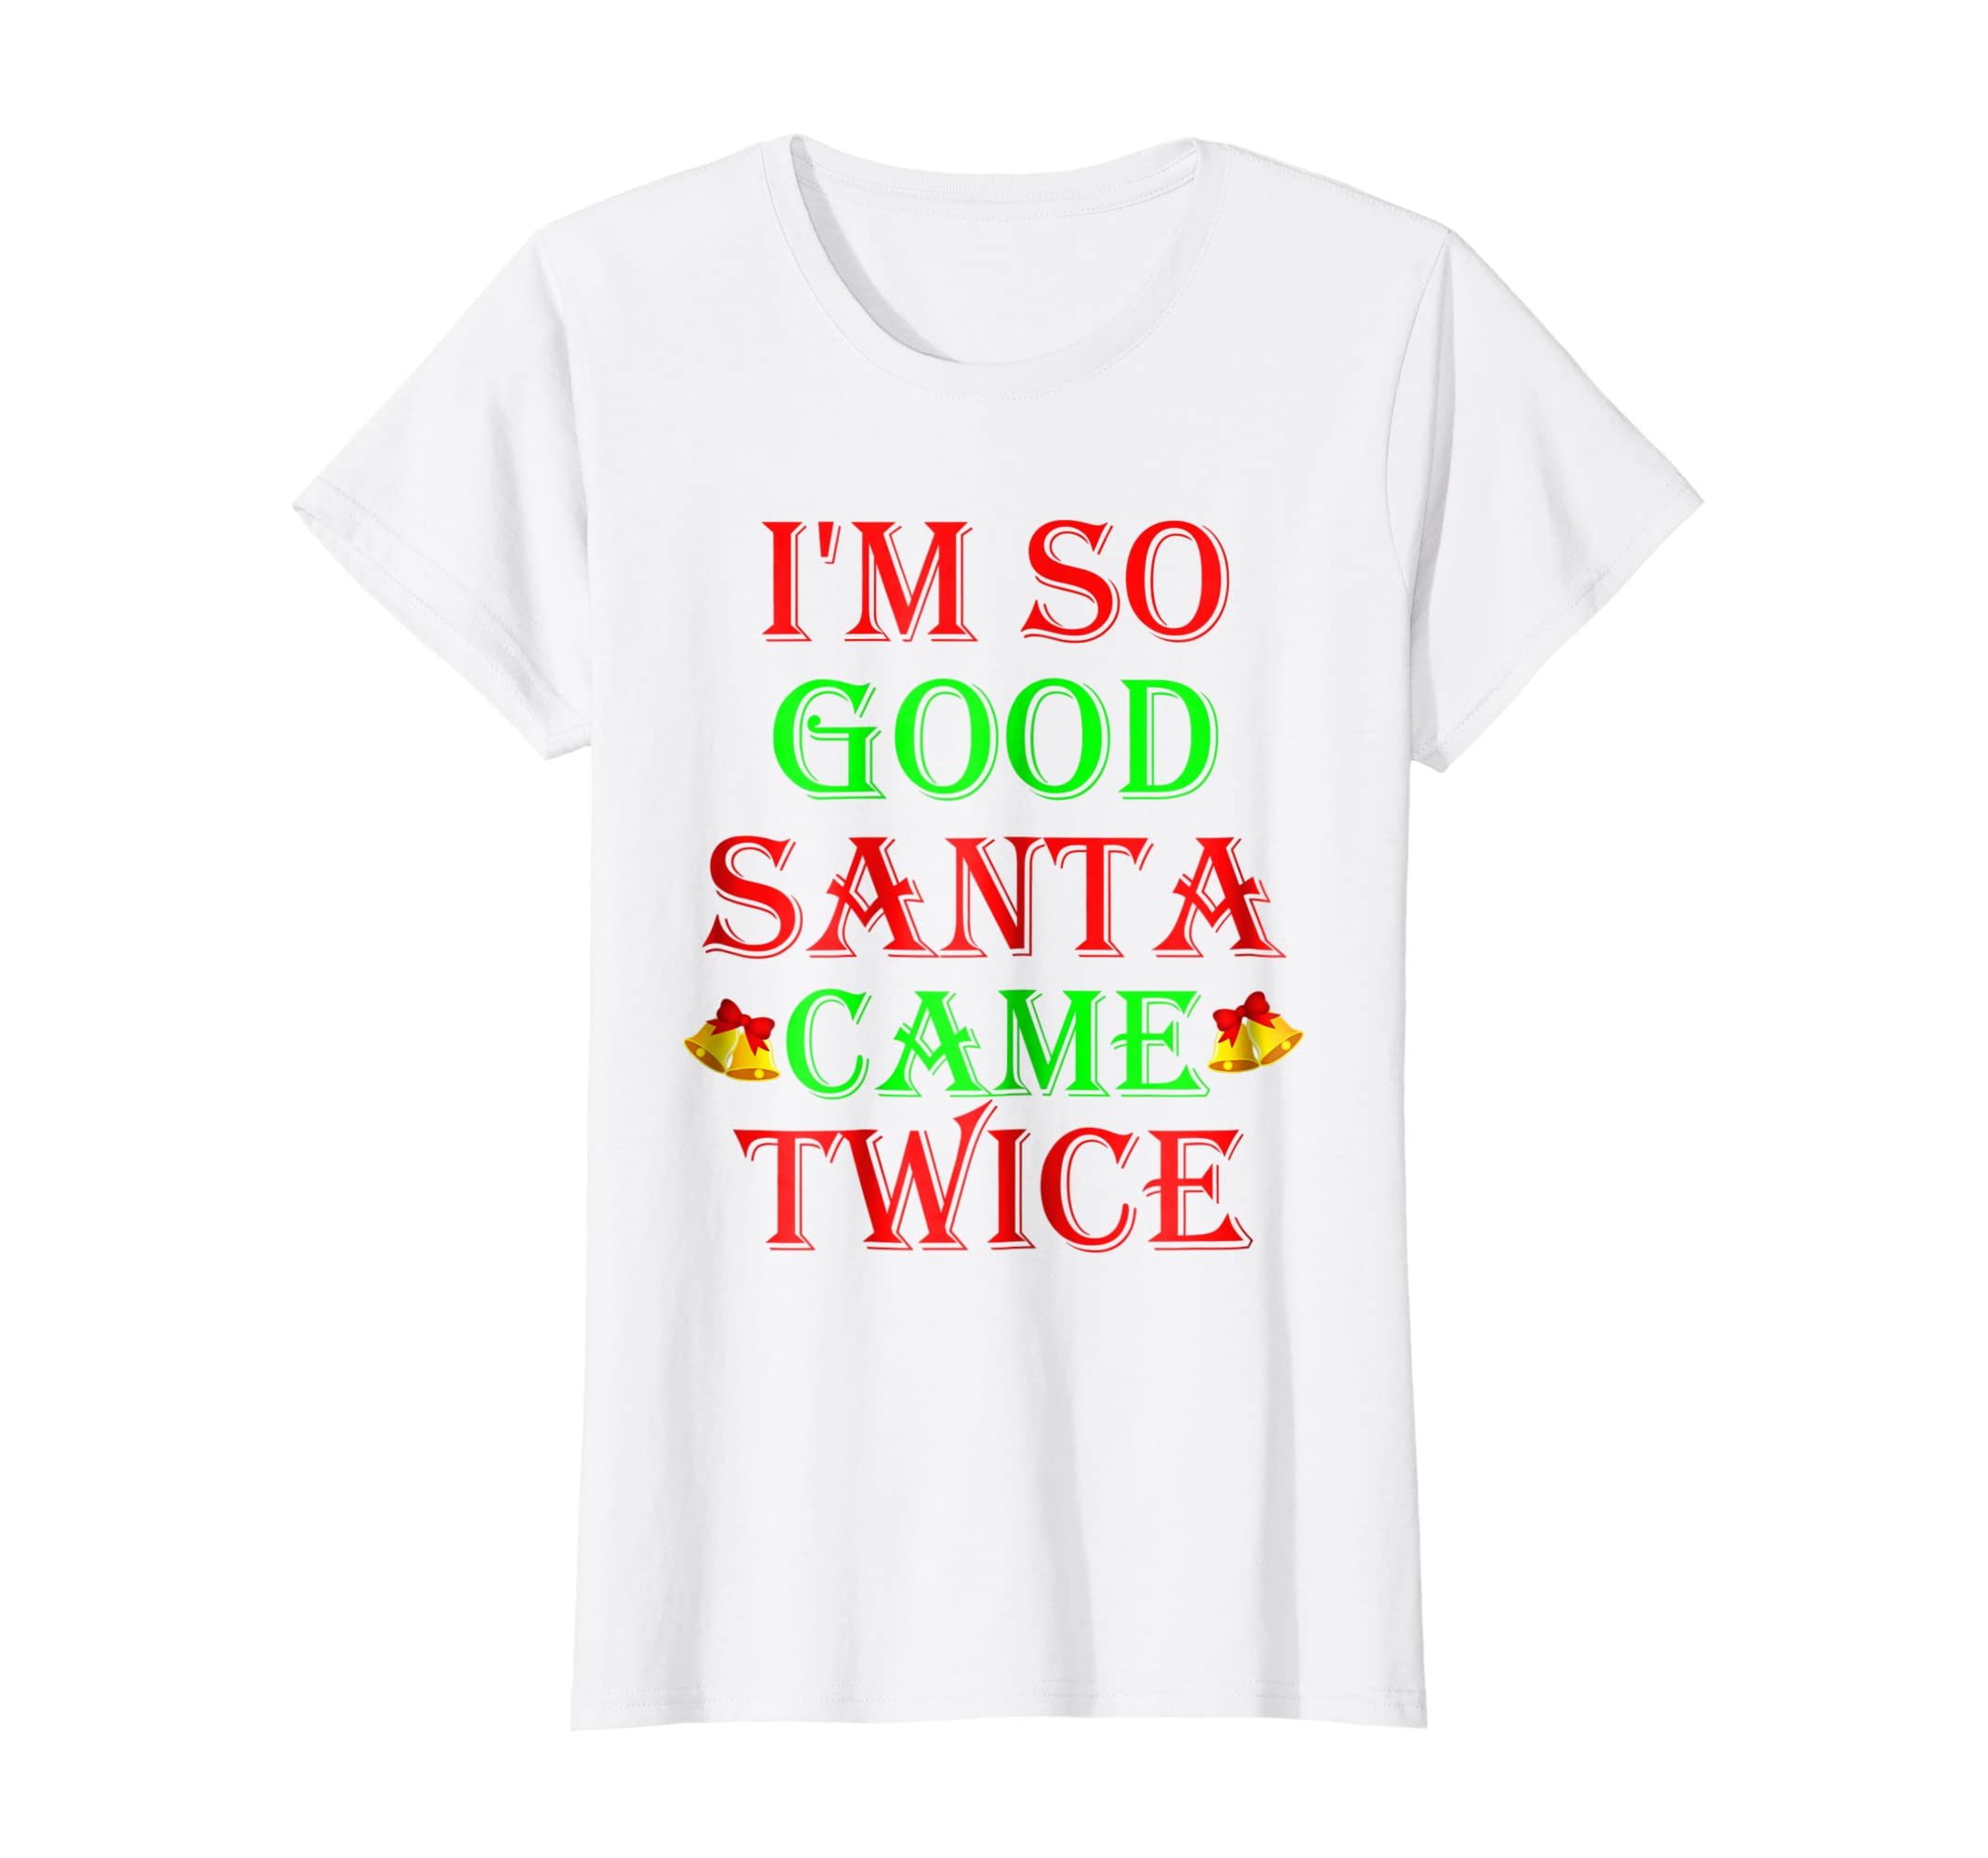 a9a3d9ff49 Amazon.com: inappropriate Christmas T Shirt Funny xmas party gift tee:  Clothing